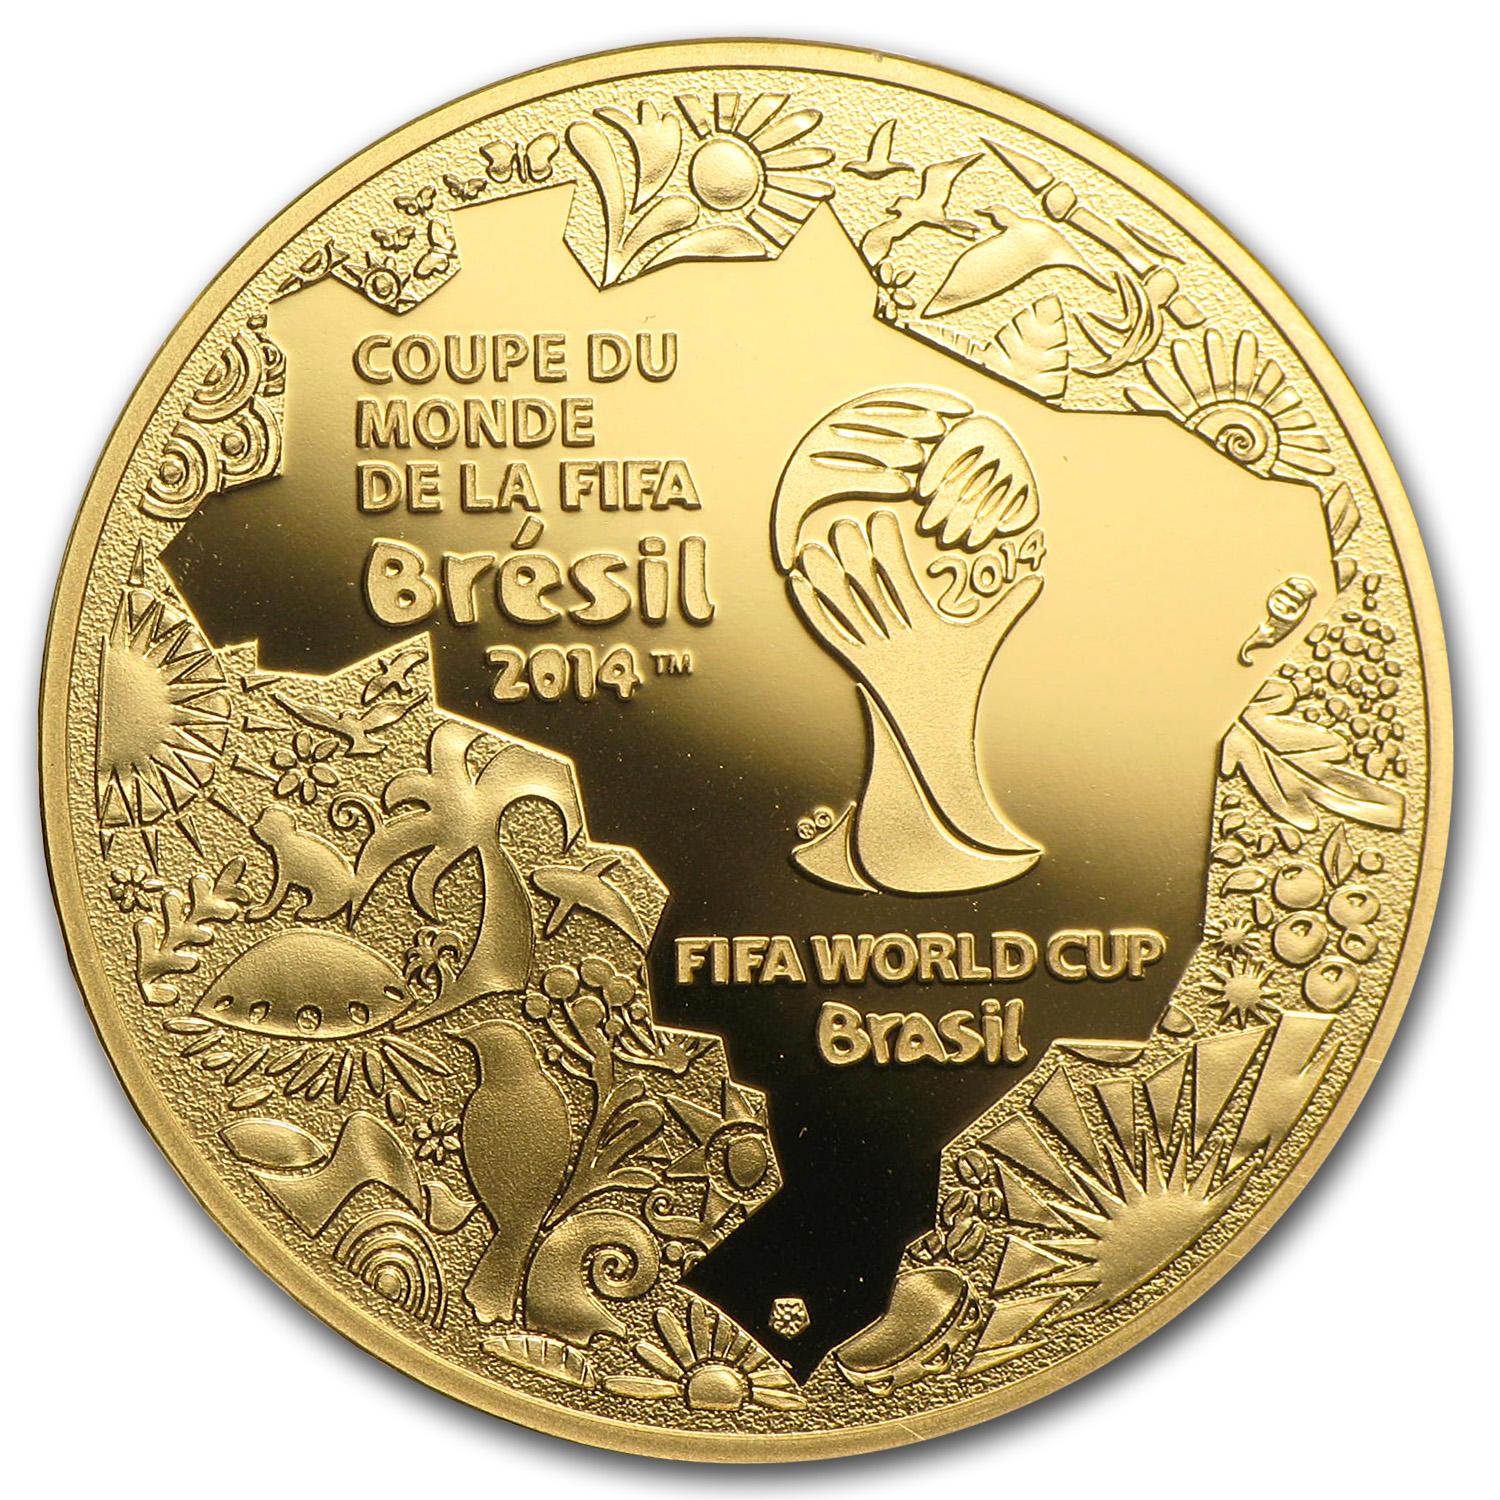 2014 France 1/4 oz Proof Gold €50 FIFA World Cup